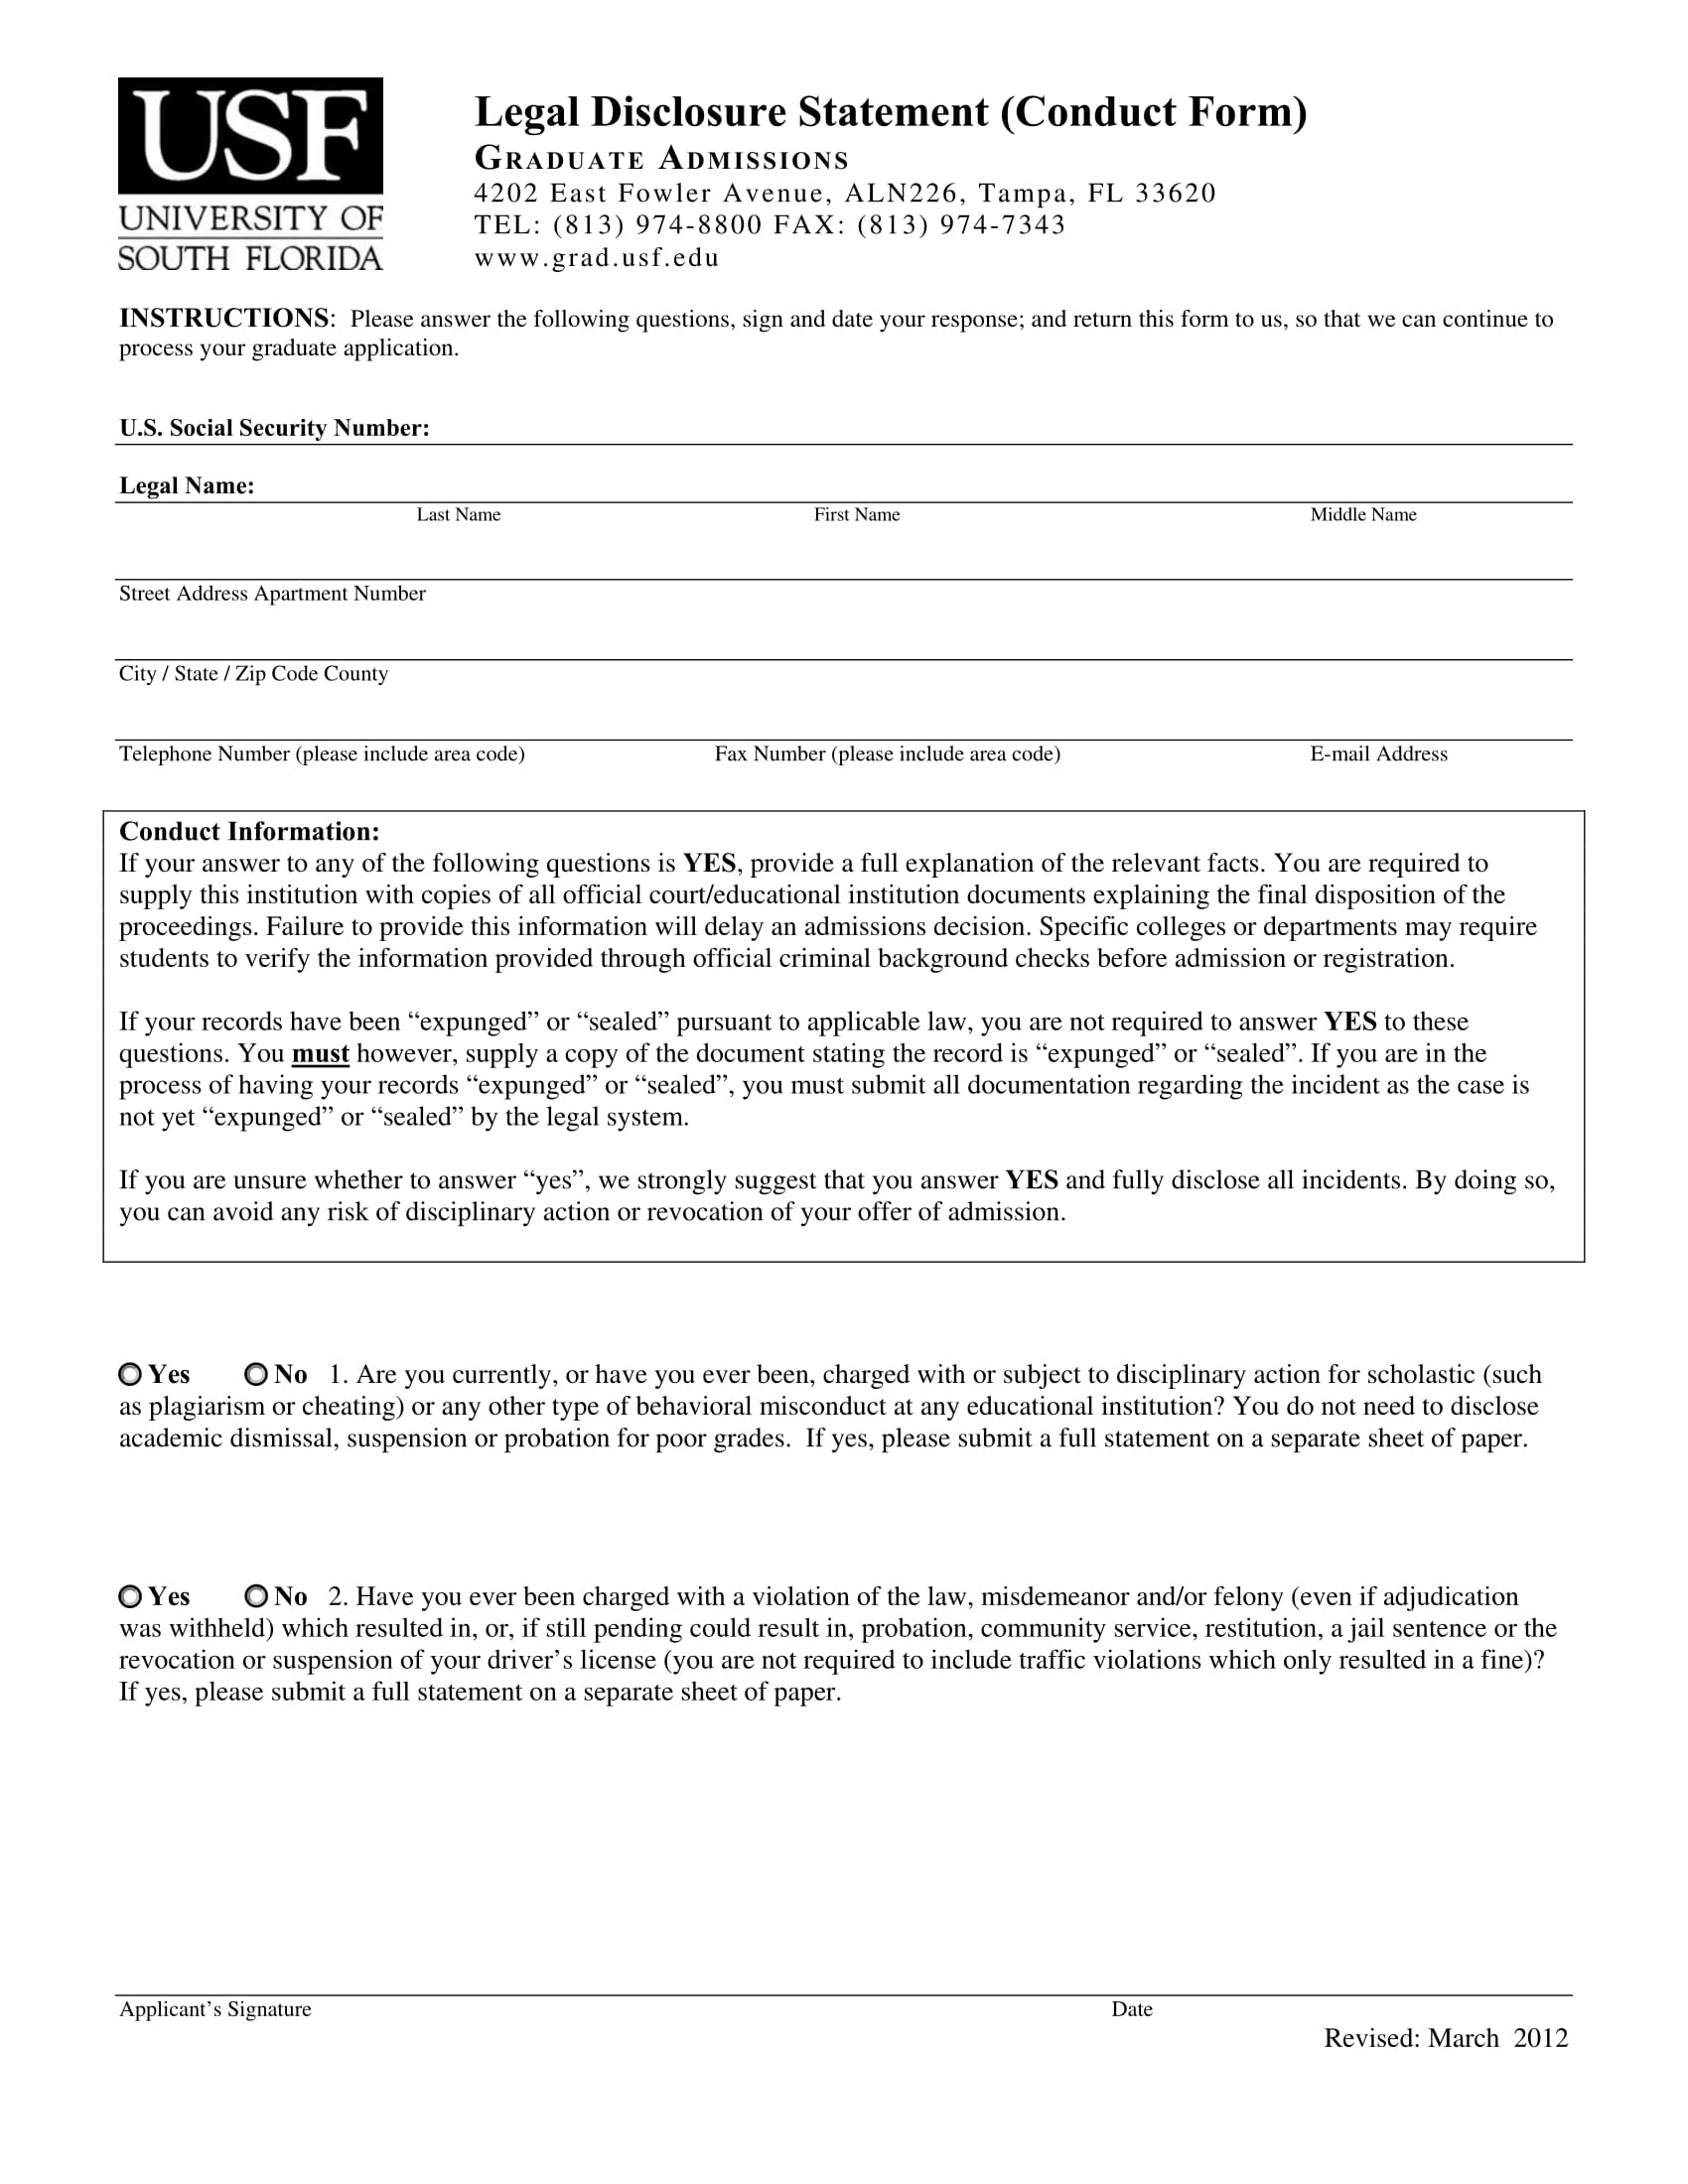 Official-Legal-Disclosure-Statement-Form-1 Job Application Form Sample on personal statement for, letter for fresher high school graduate, form for un, letter introduction for, quad graphics, letter intent, approved information for,